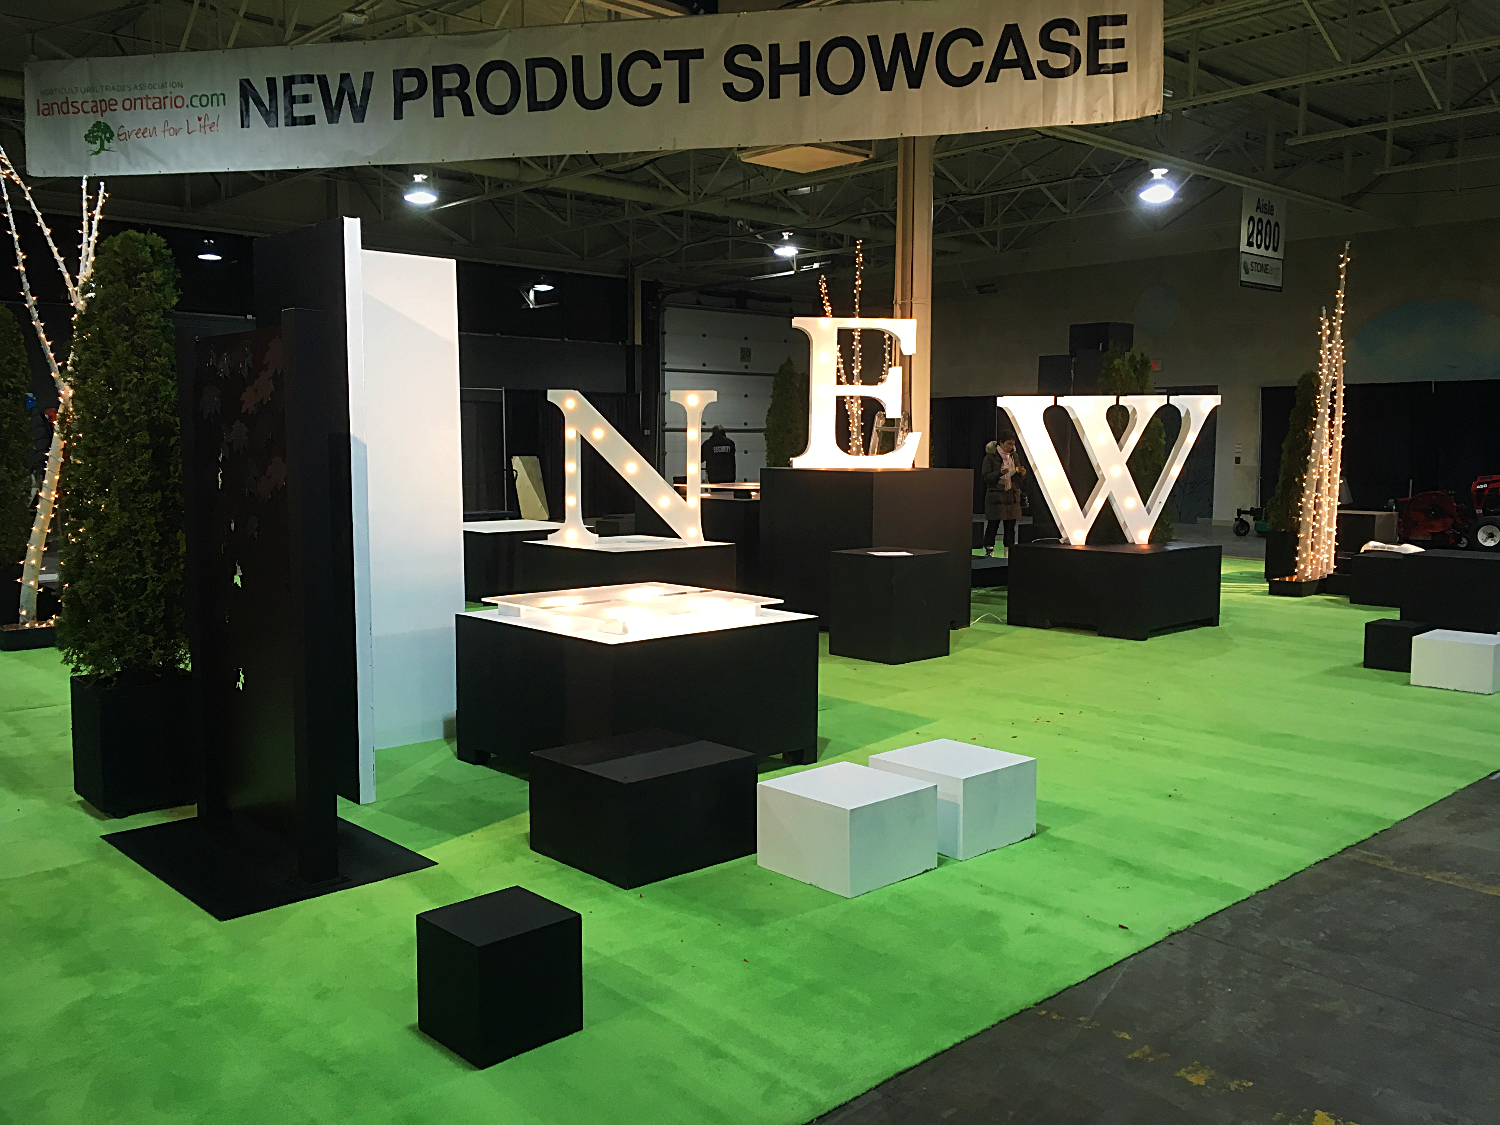 14.New Product Showcase